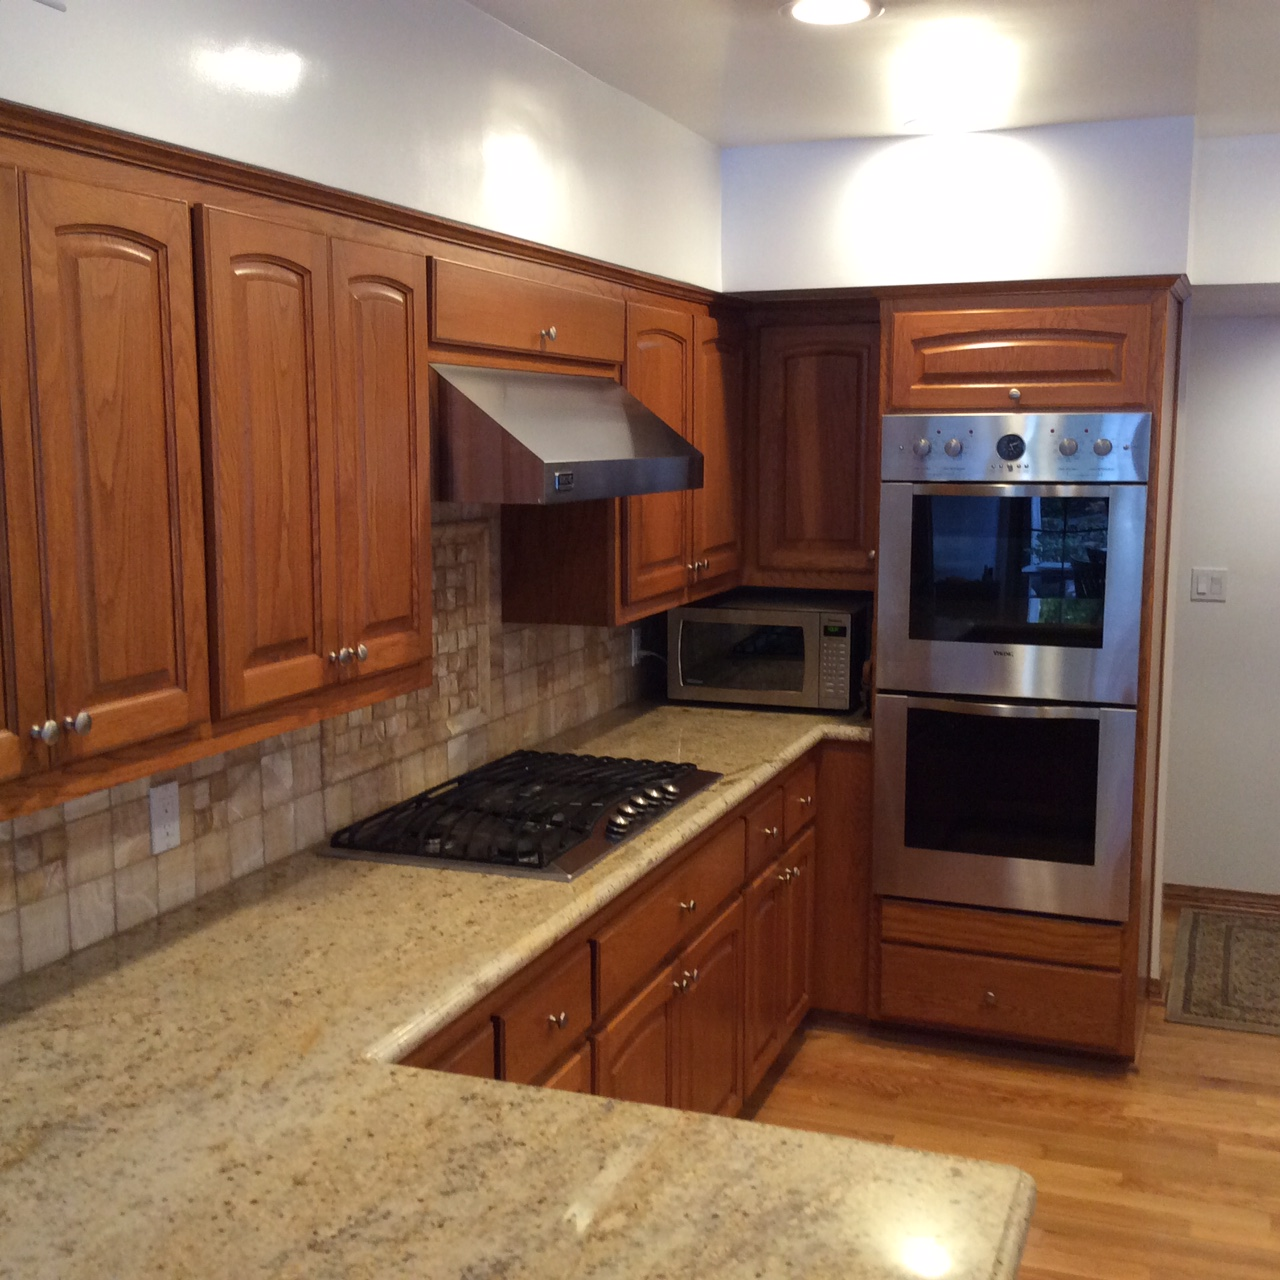 Refaced stain cabinets and granite counters